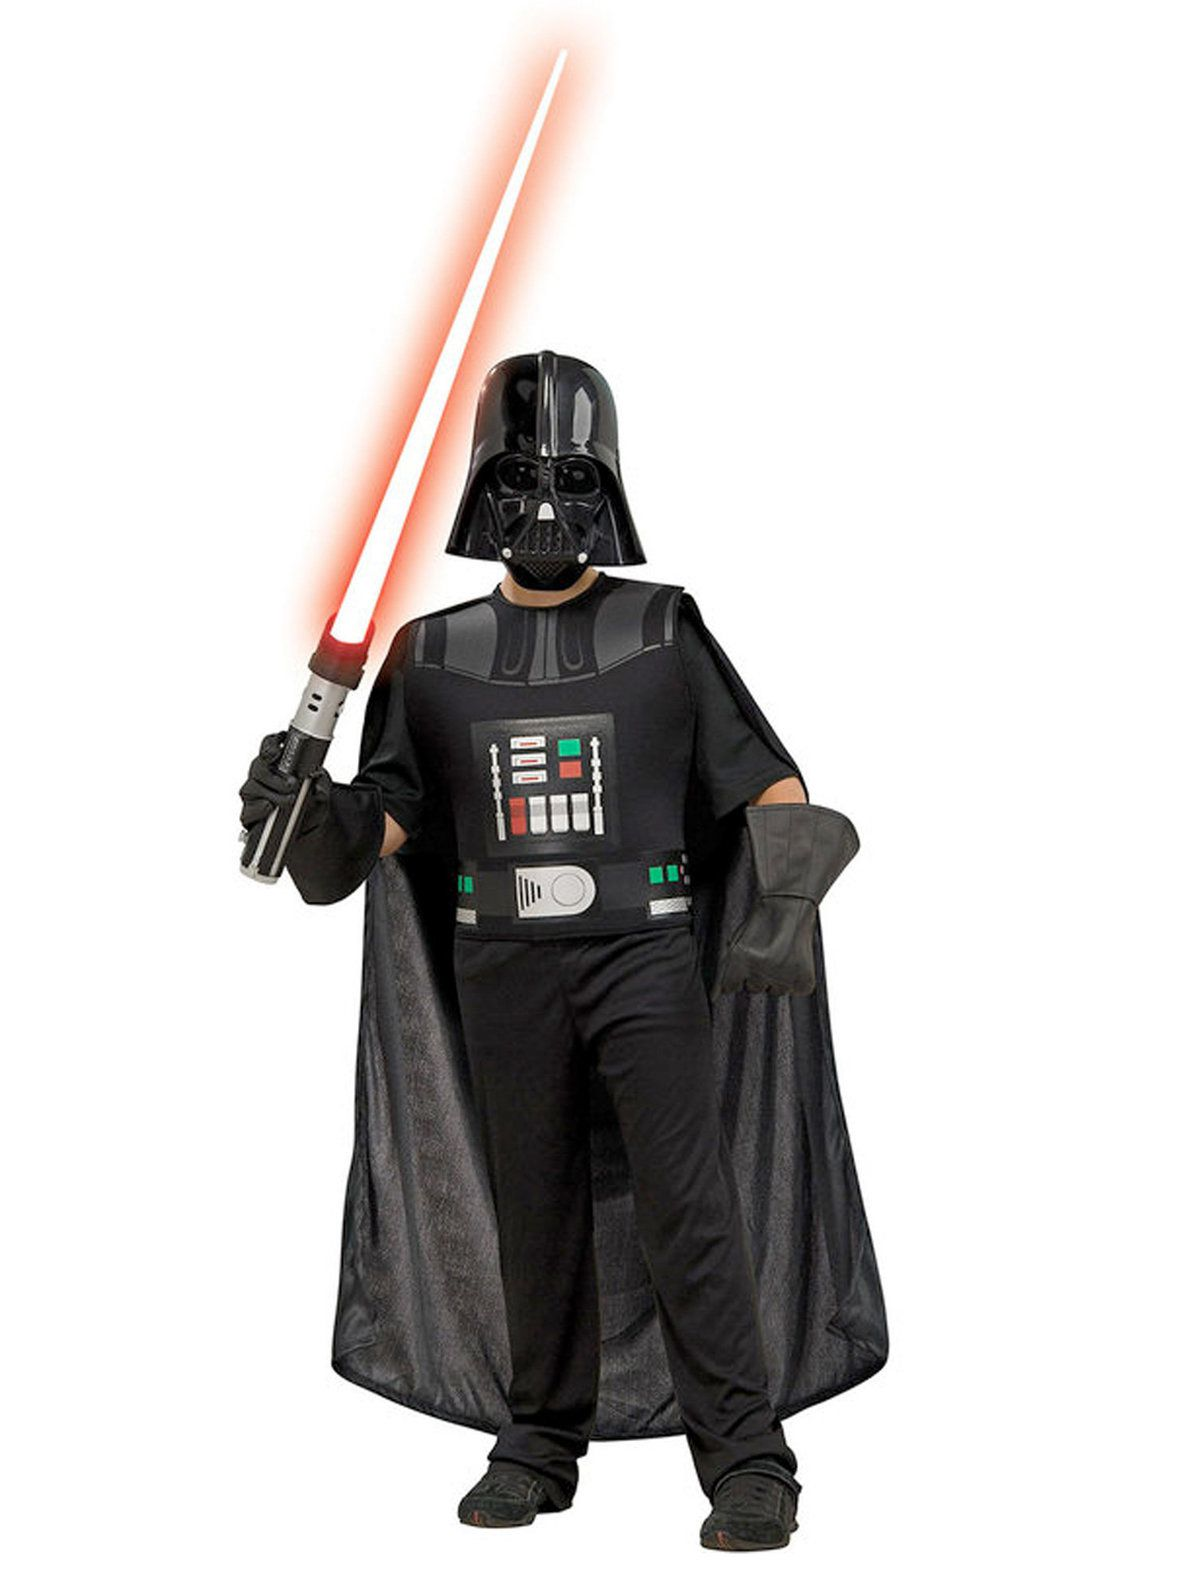 Deluxe Star Wars Battle Trunk The Force Awakens Villain Character Darth Vader Darth Anakin Skywalker Halloween Cosplay Costumes